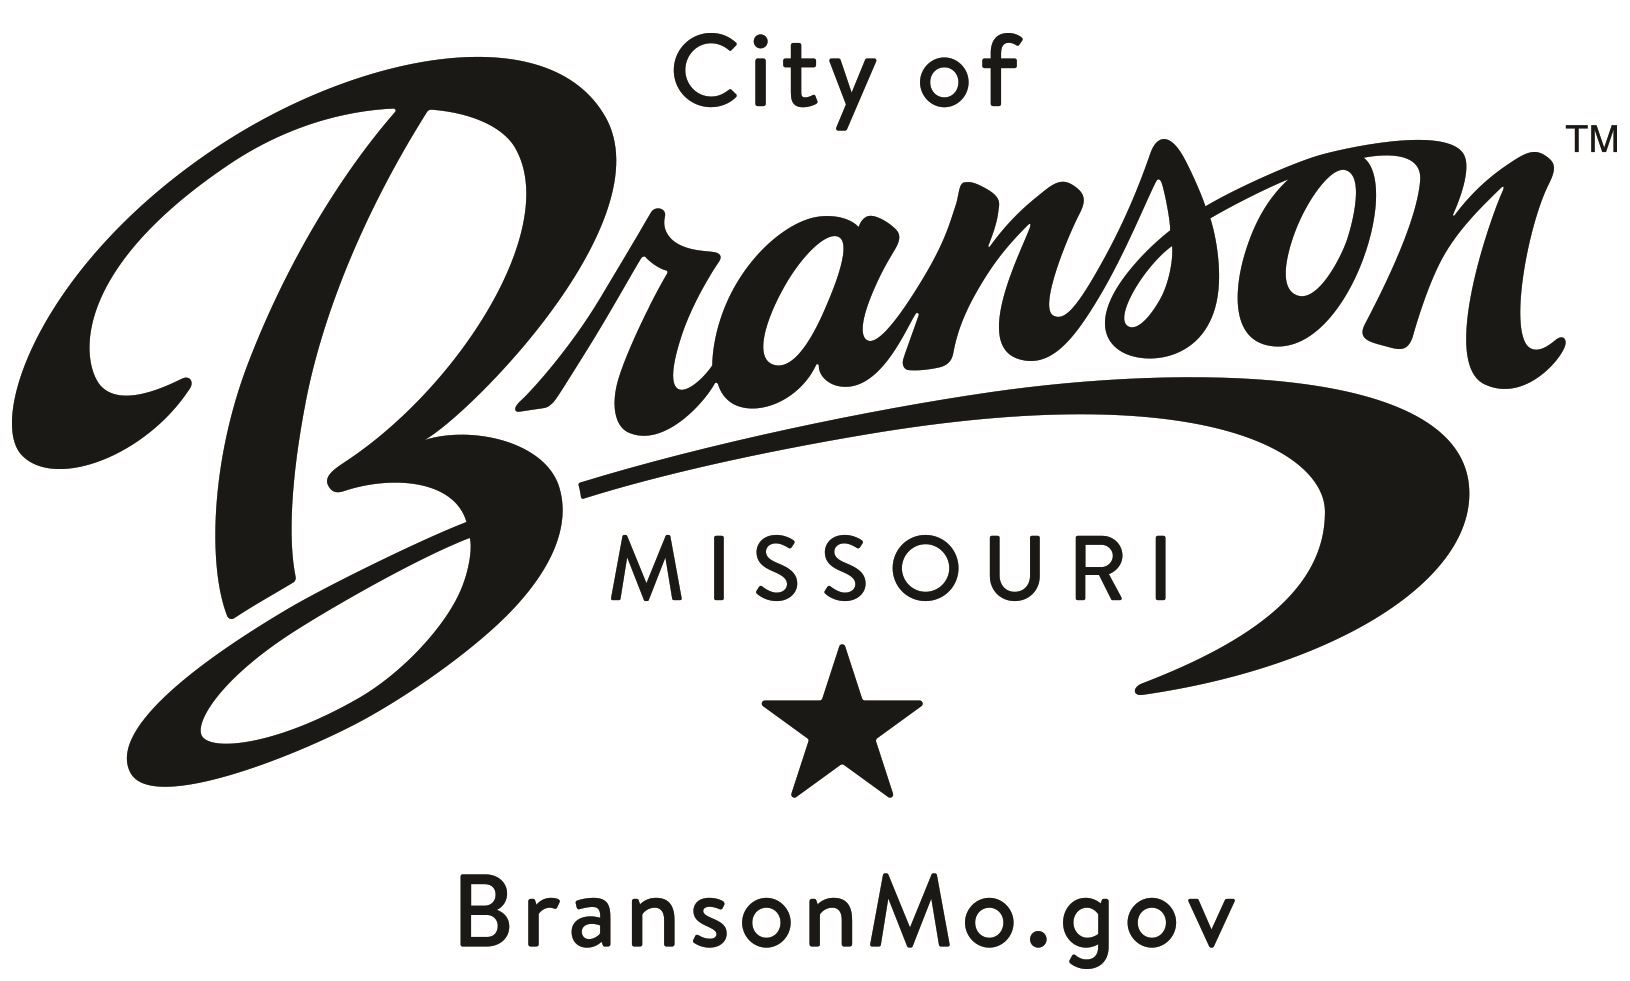 BransonLogo_City Of